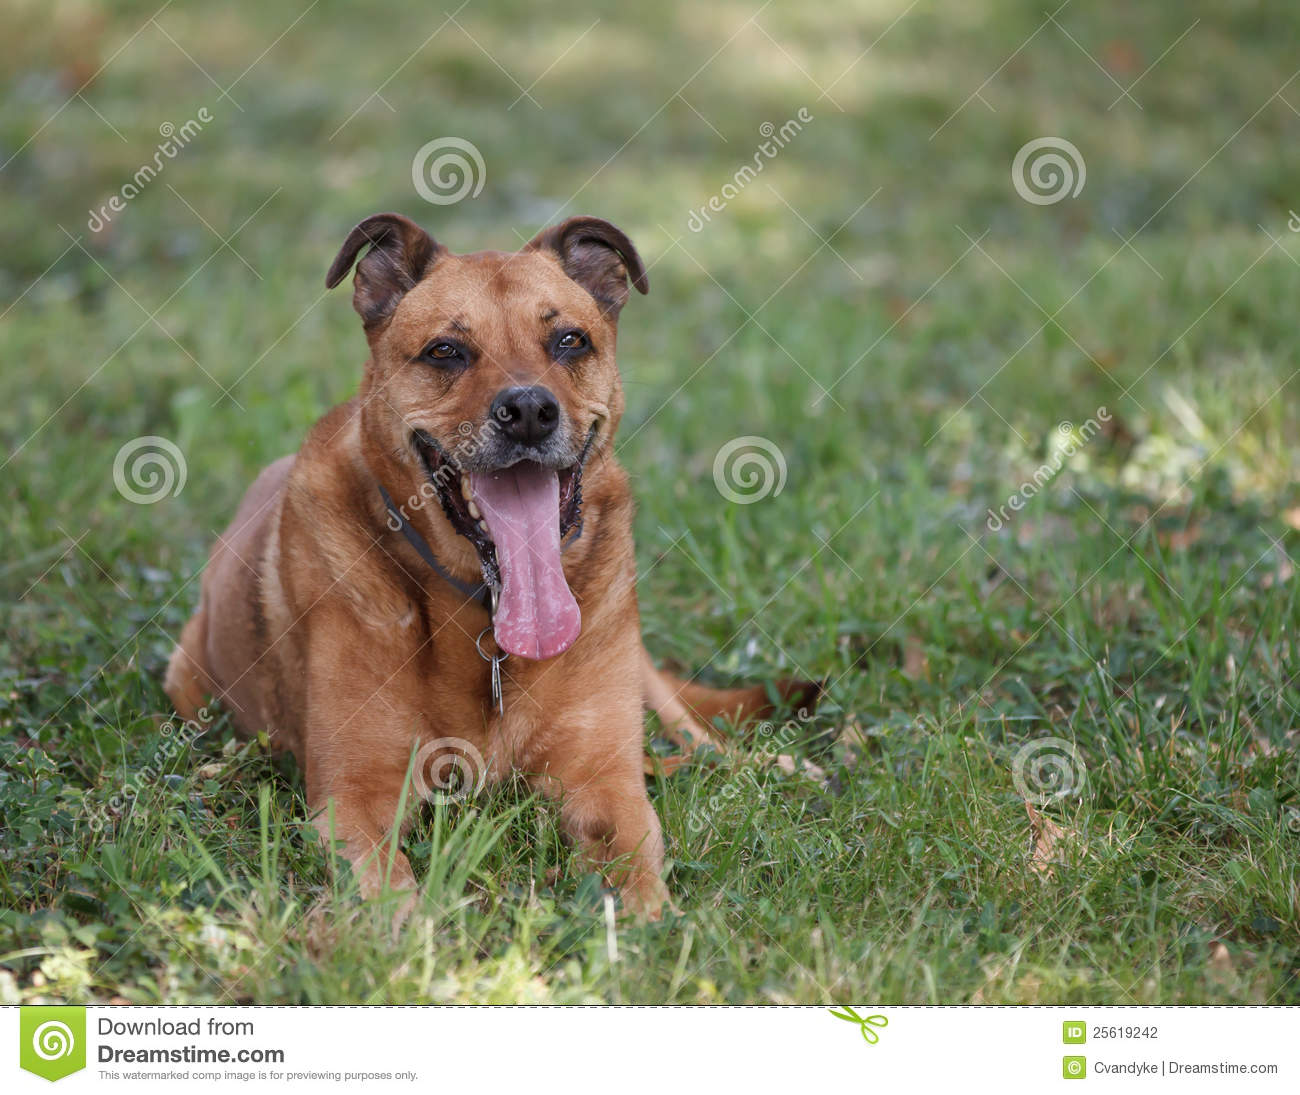 German Shepherd Boxer Rottweiller Mix Dog Smiling Stock Photo